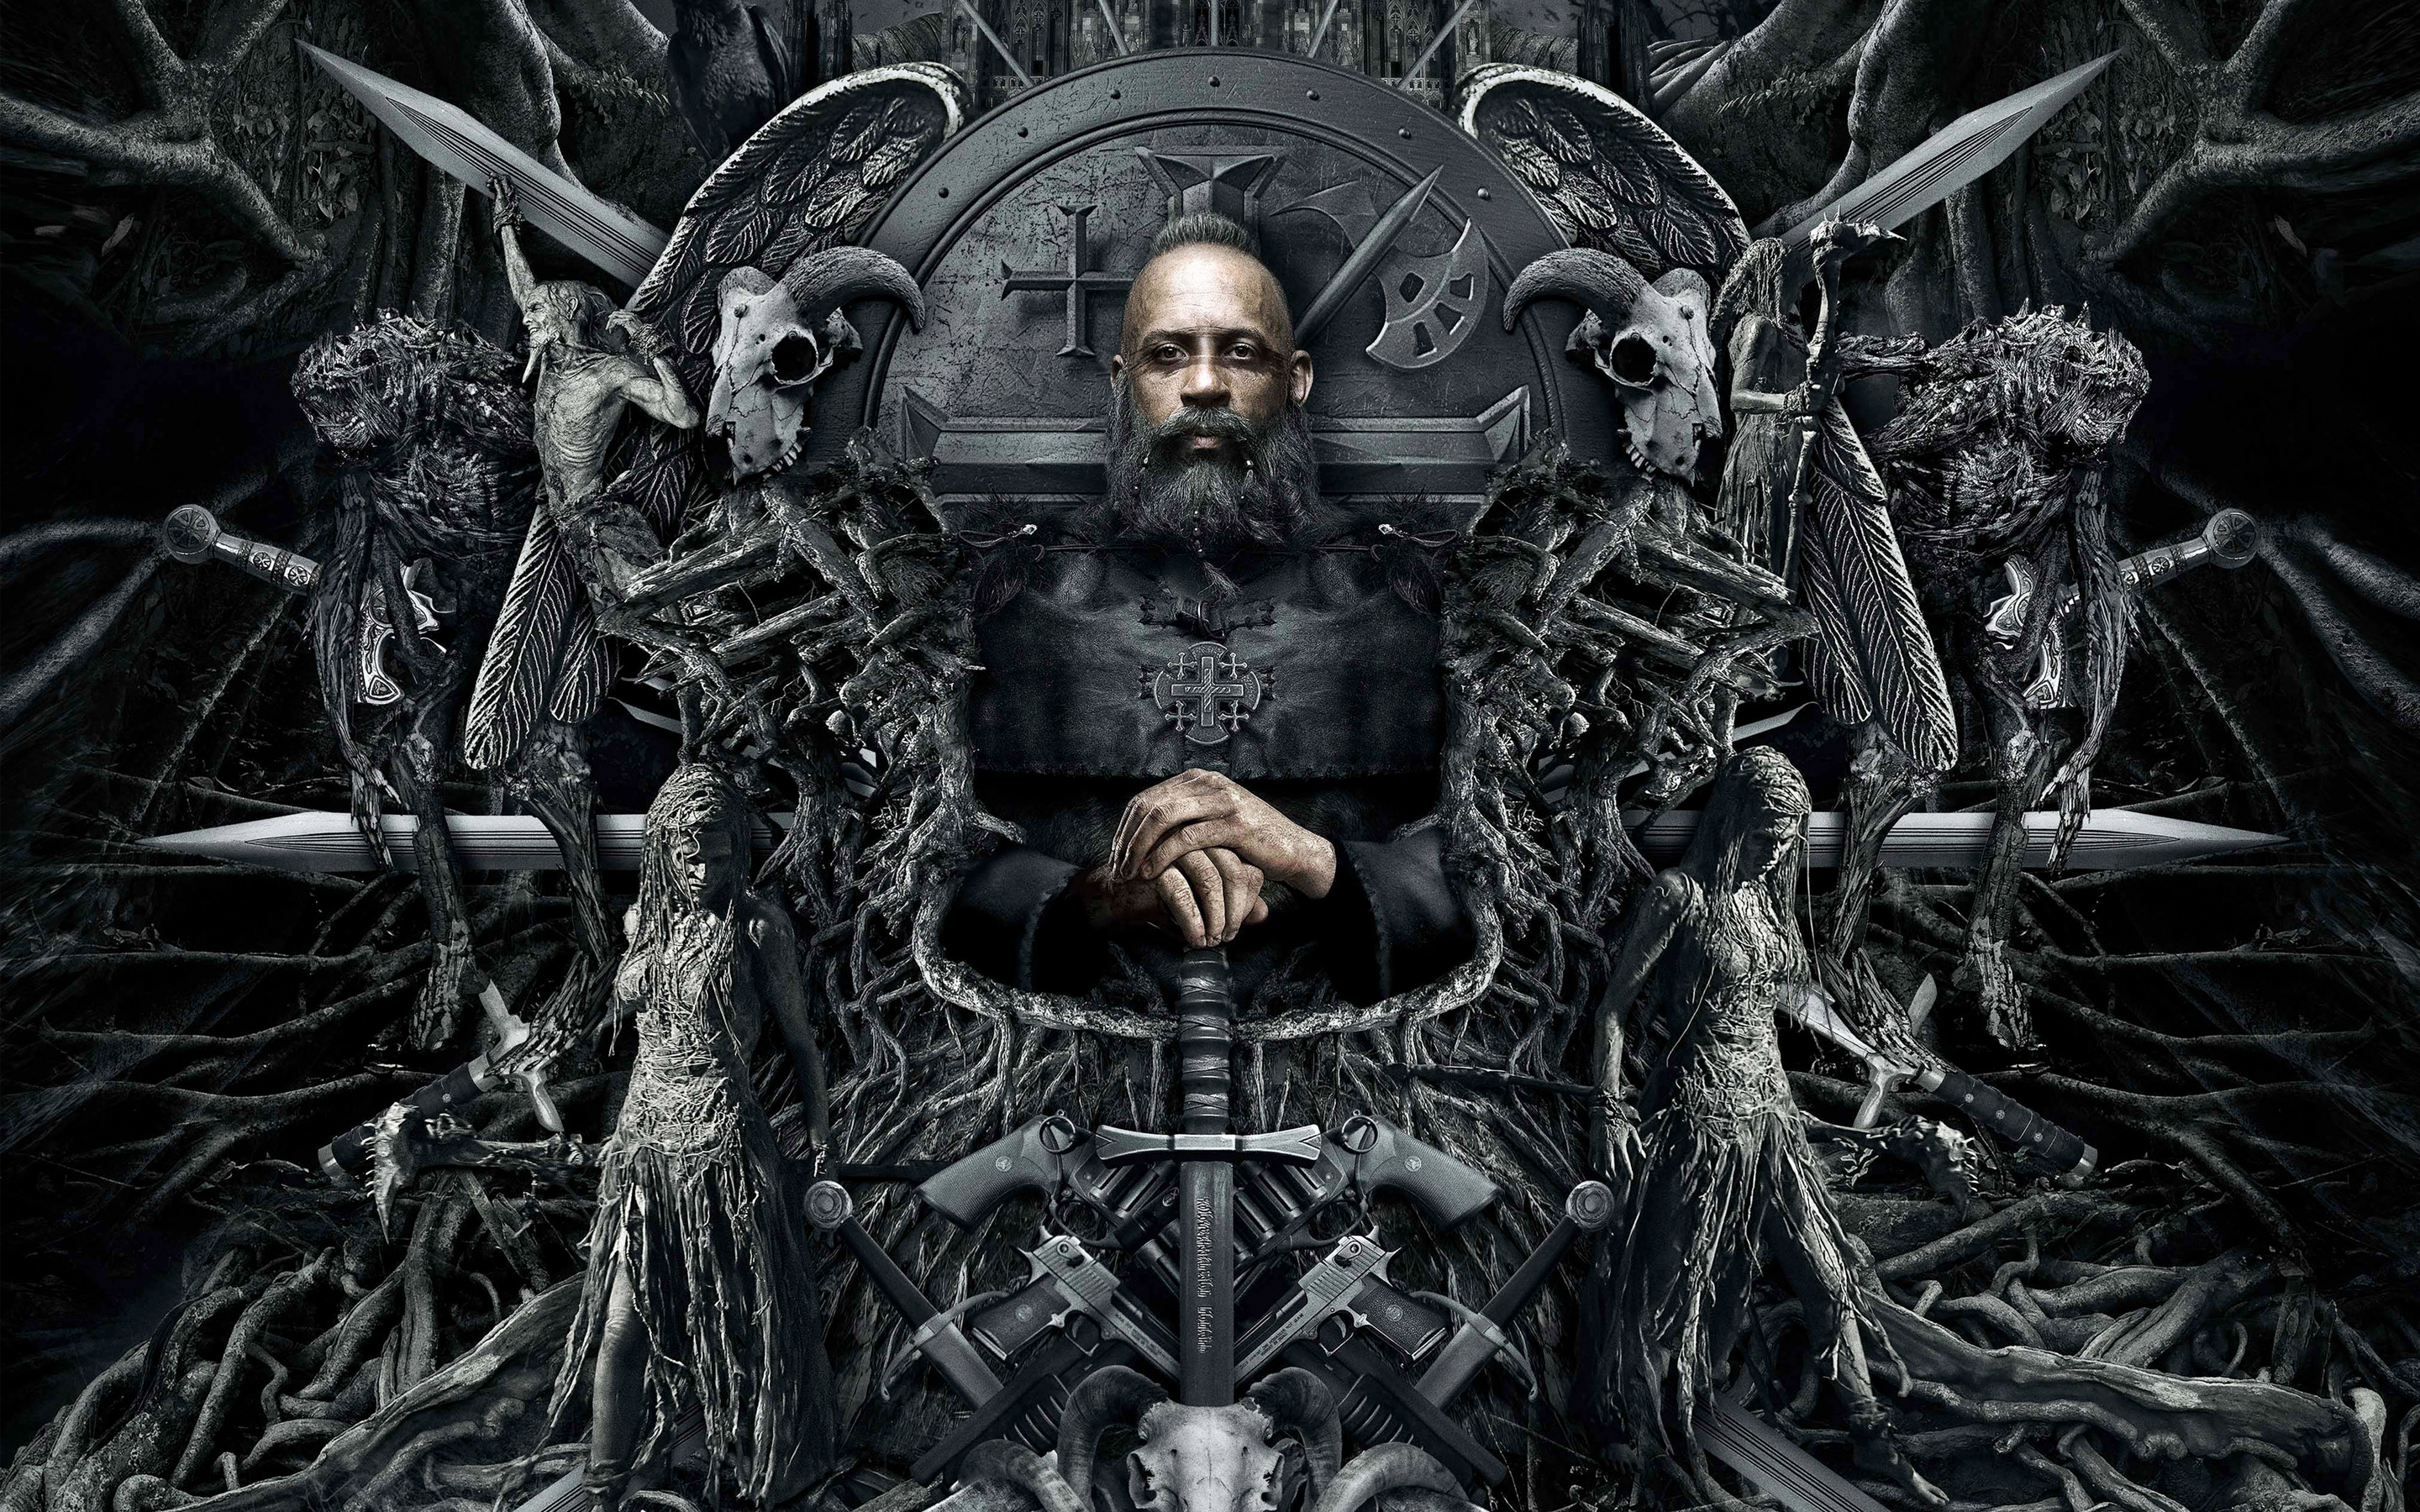 HD Wallpapers Vin Diesel The Last Witch Hunter